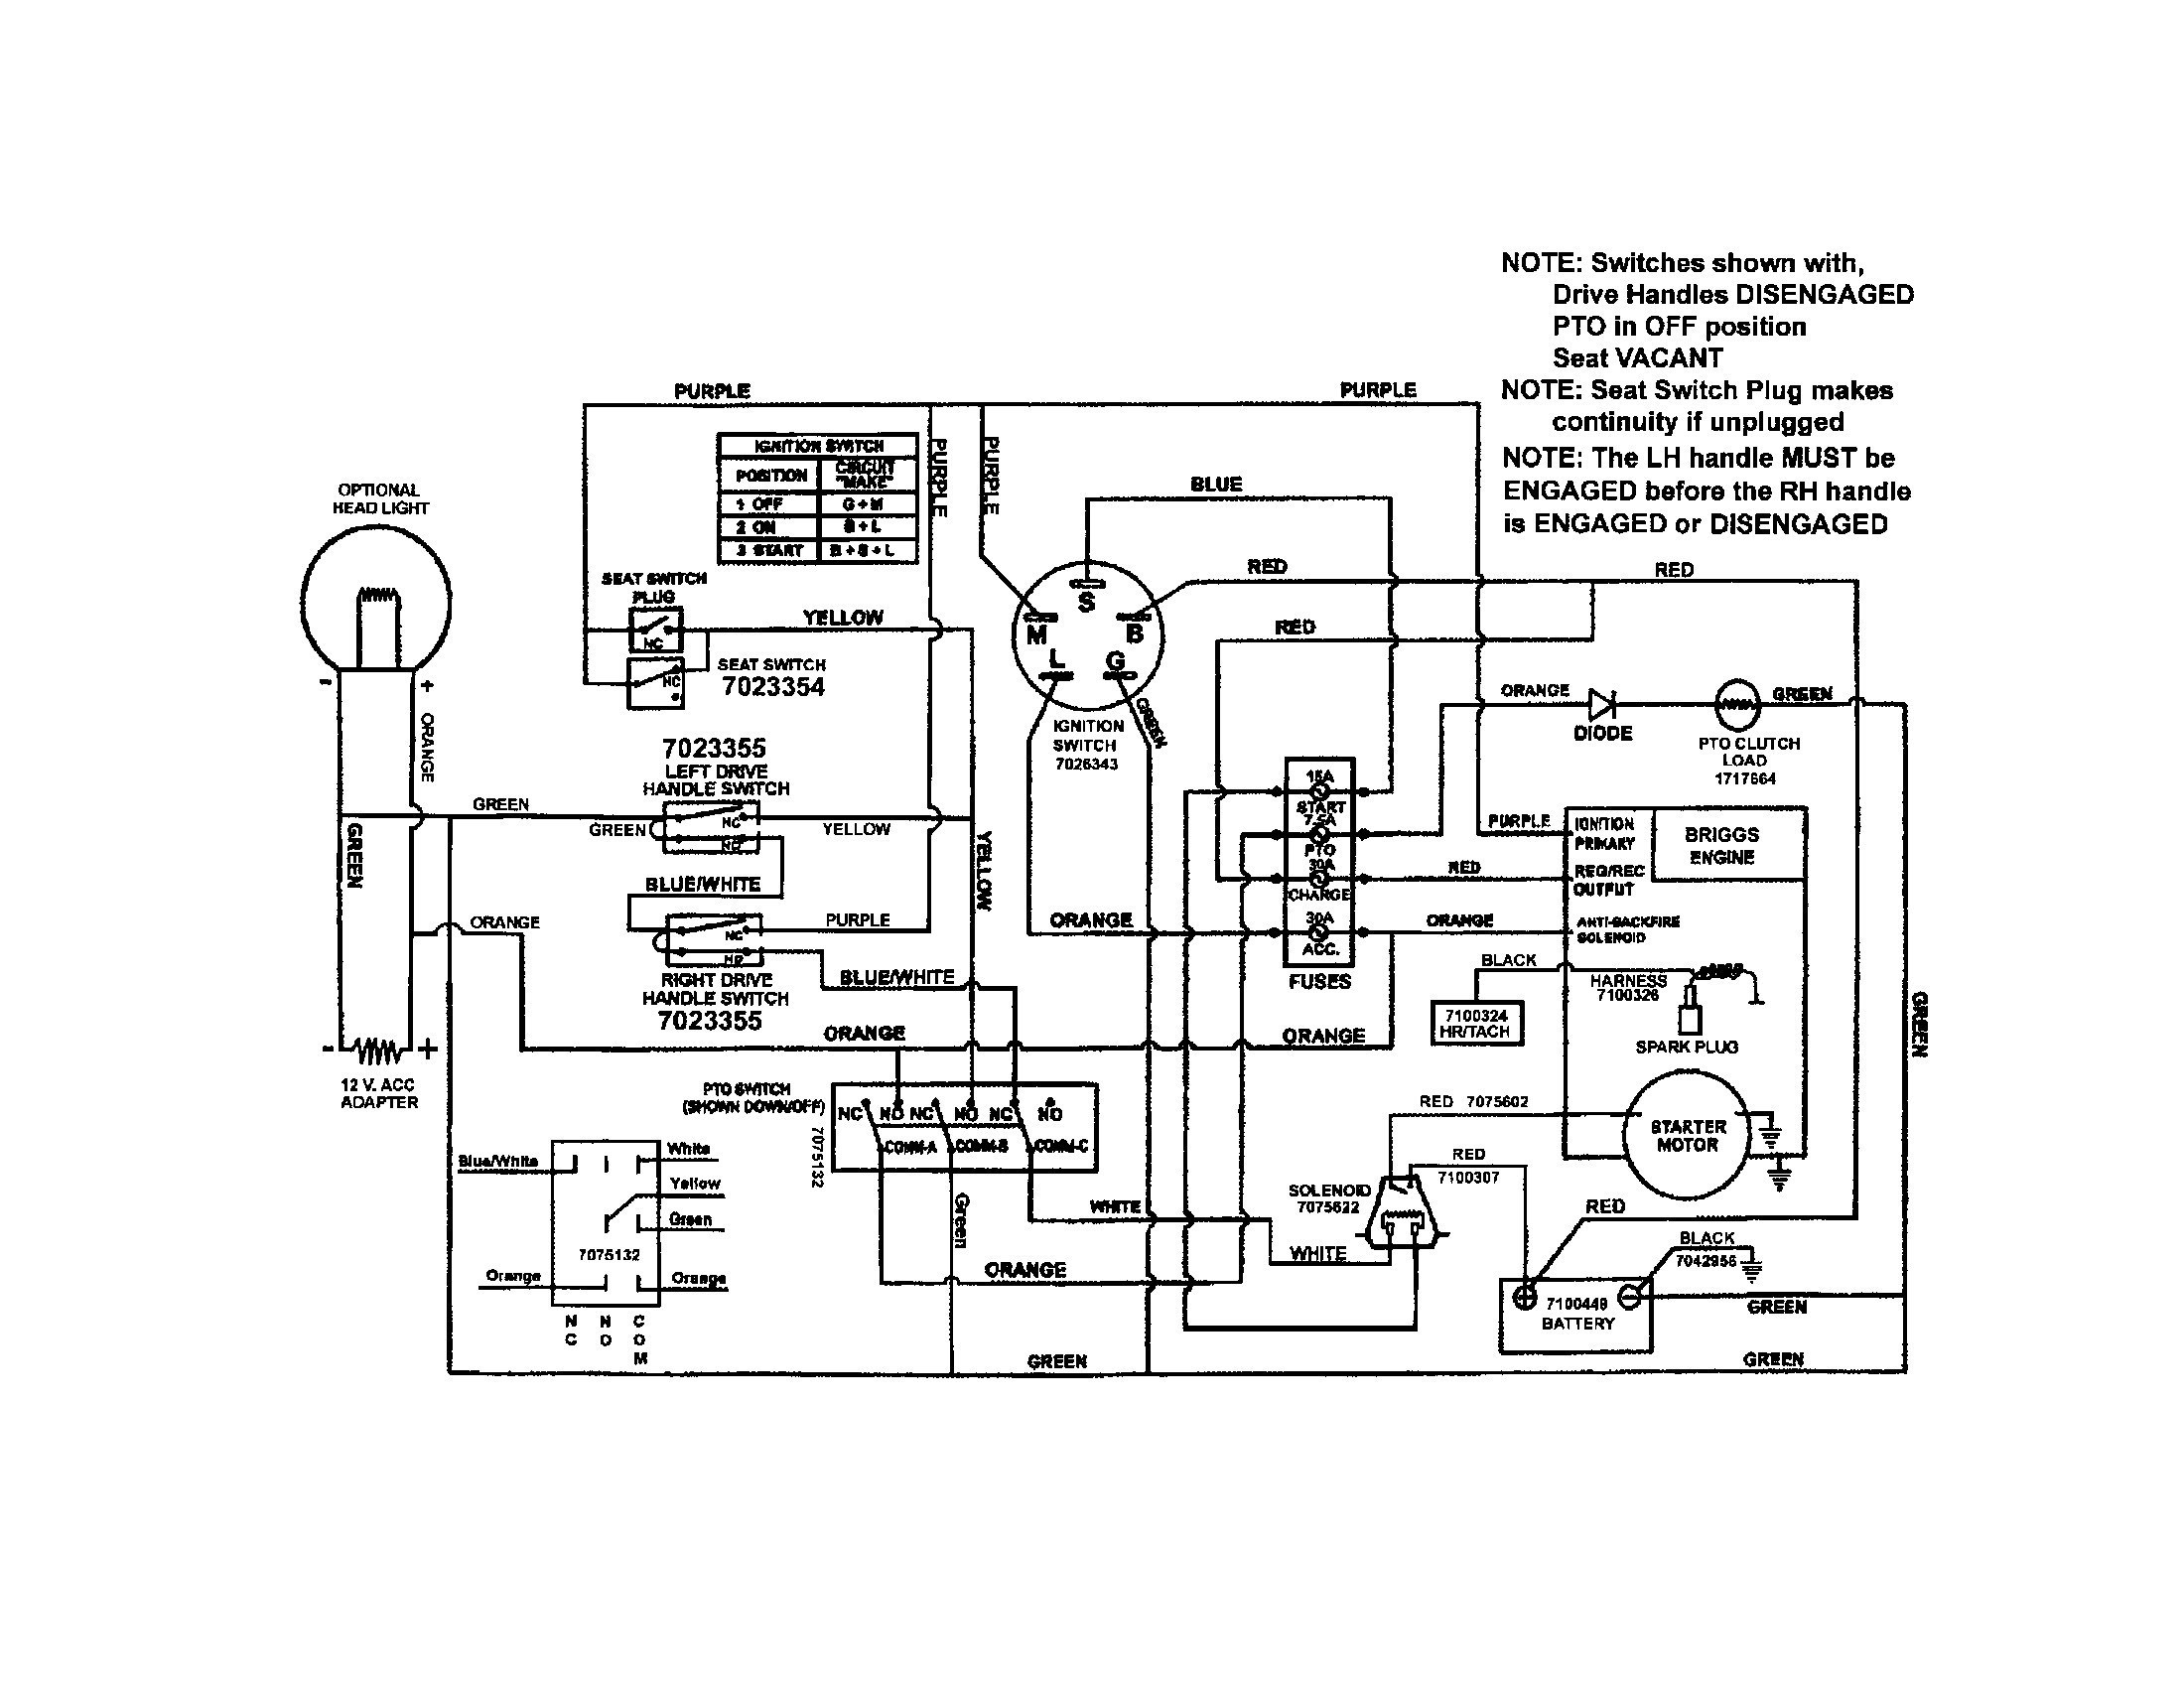 20 Hp Briggs Vanguard Engine Parts Diagram Wiring - Wiring Diagram Data - Briggs And Stratton Wiring Diagram